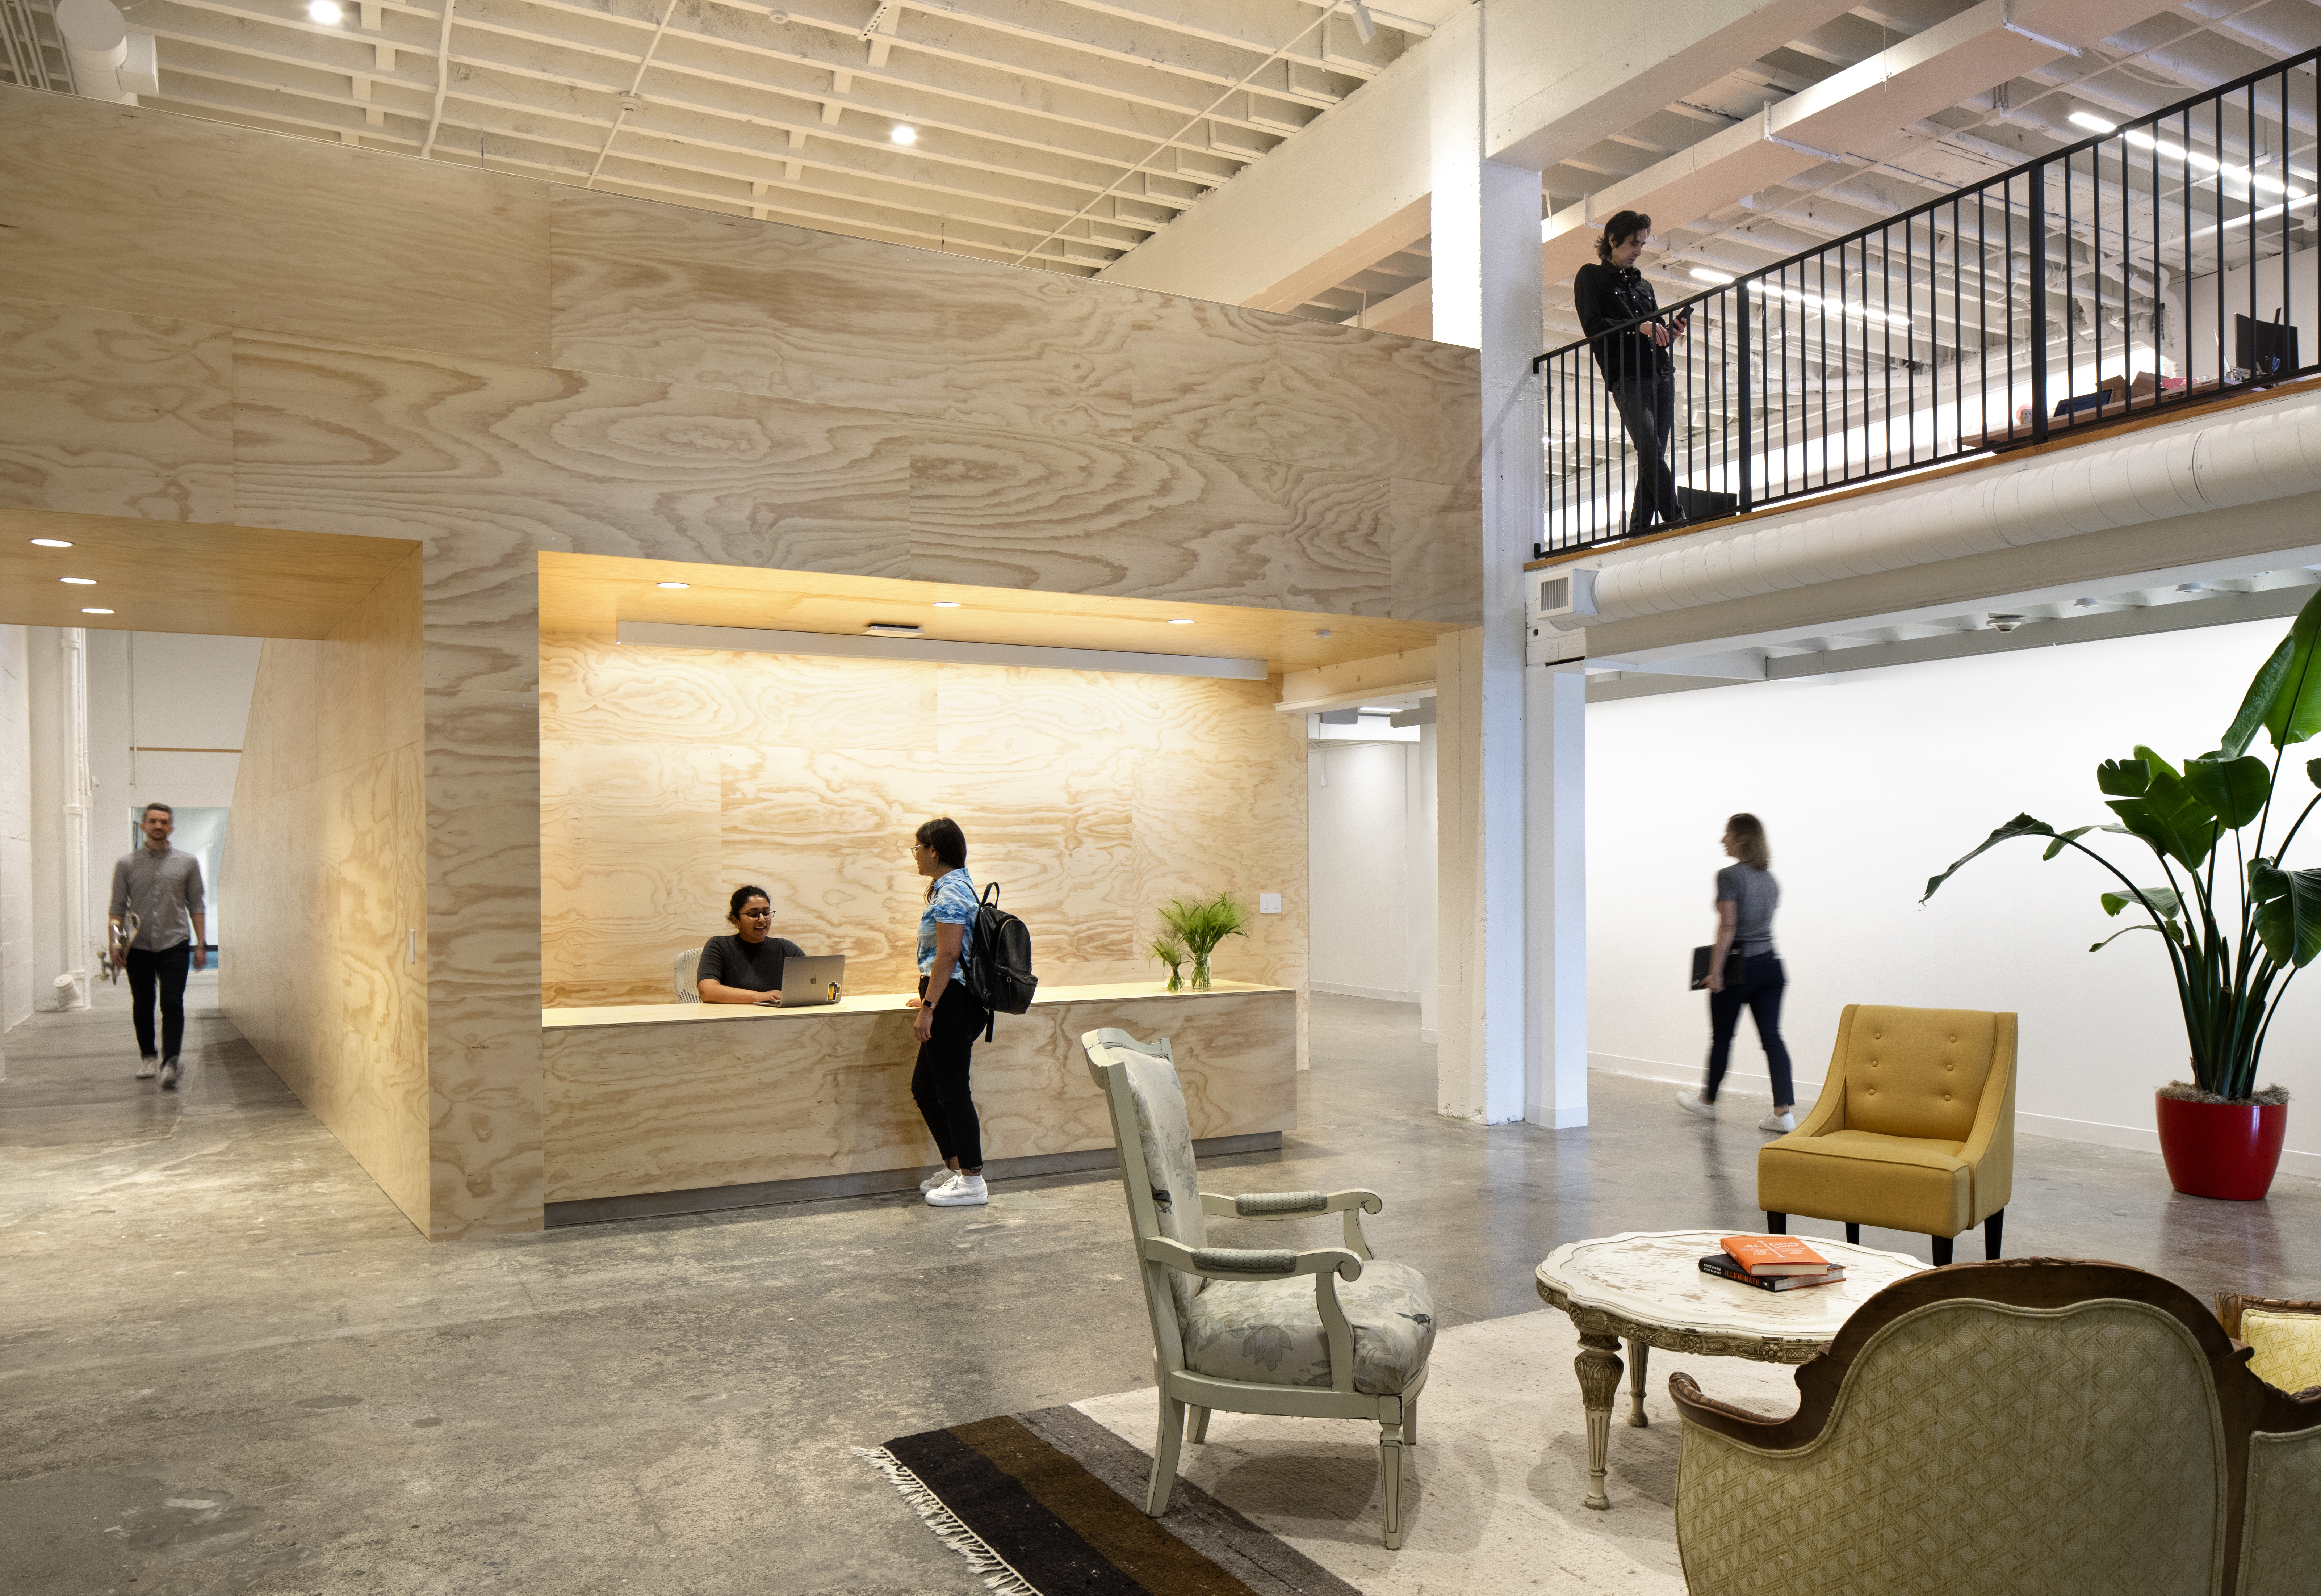 Skender Completes Prezi's 3-story, 20,000-SQFT Office in San Francisco